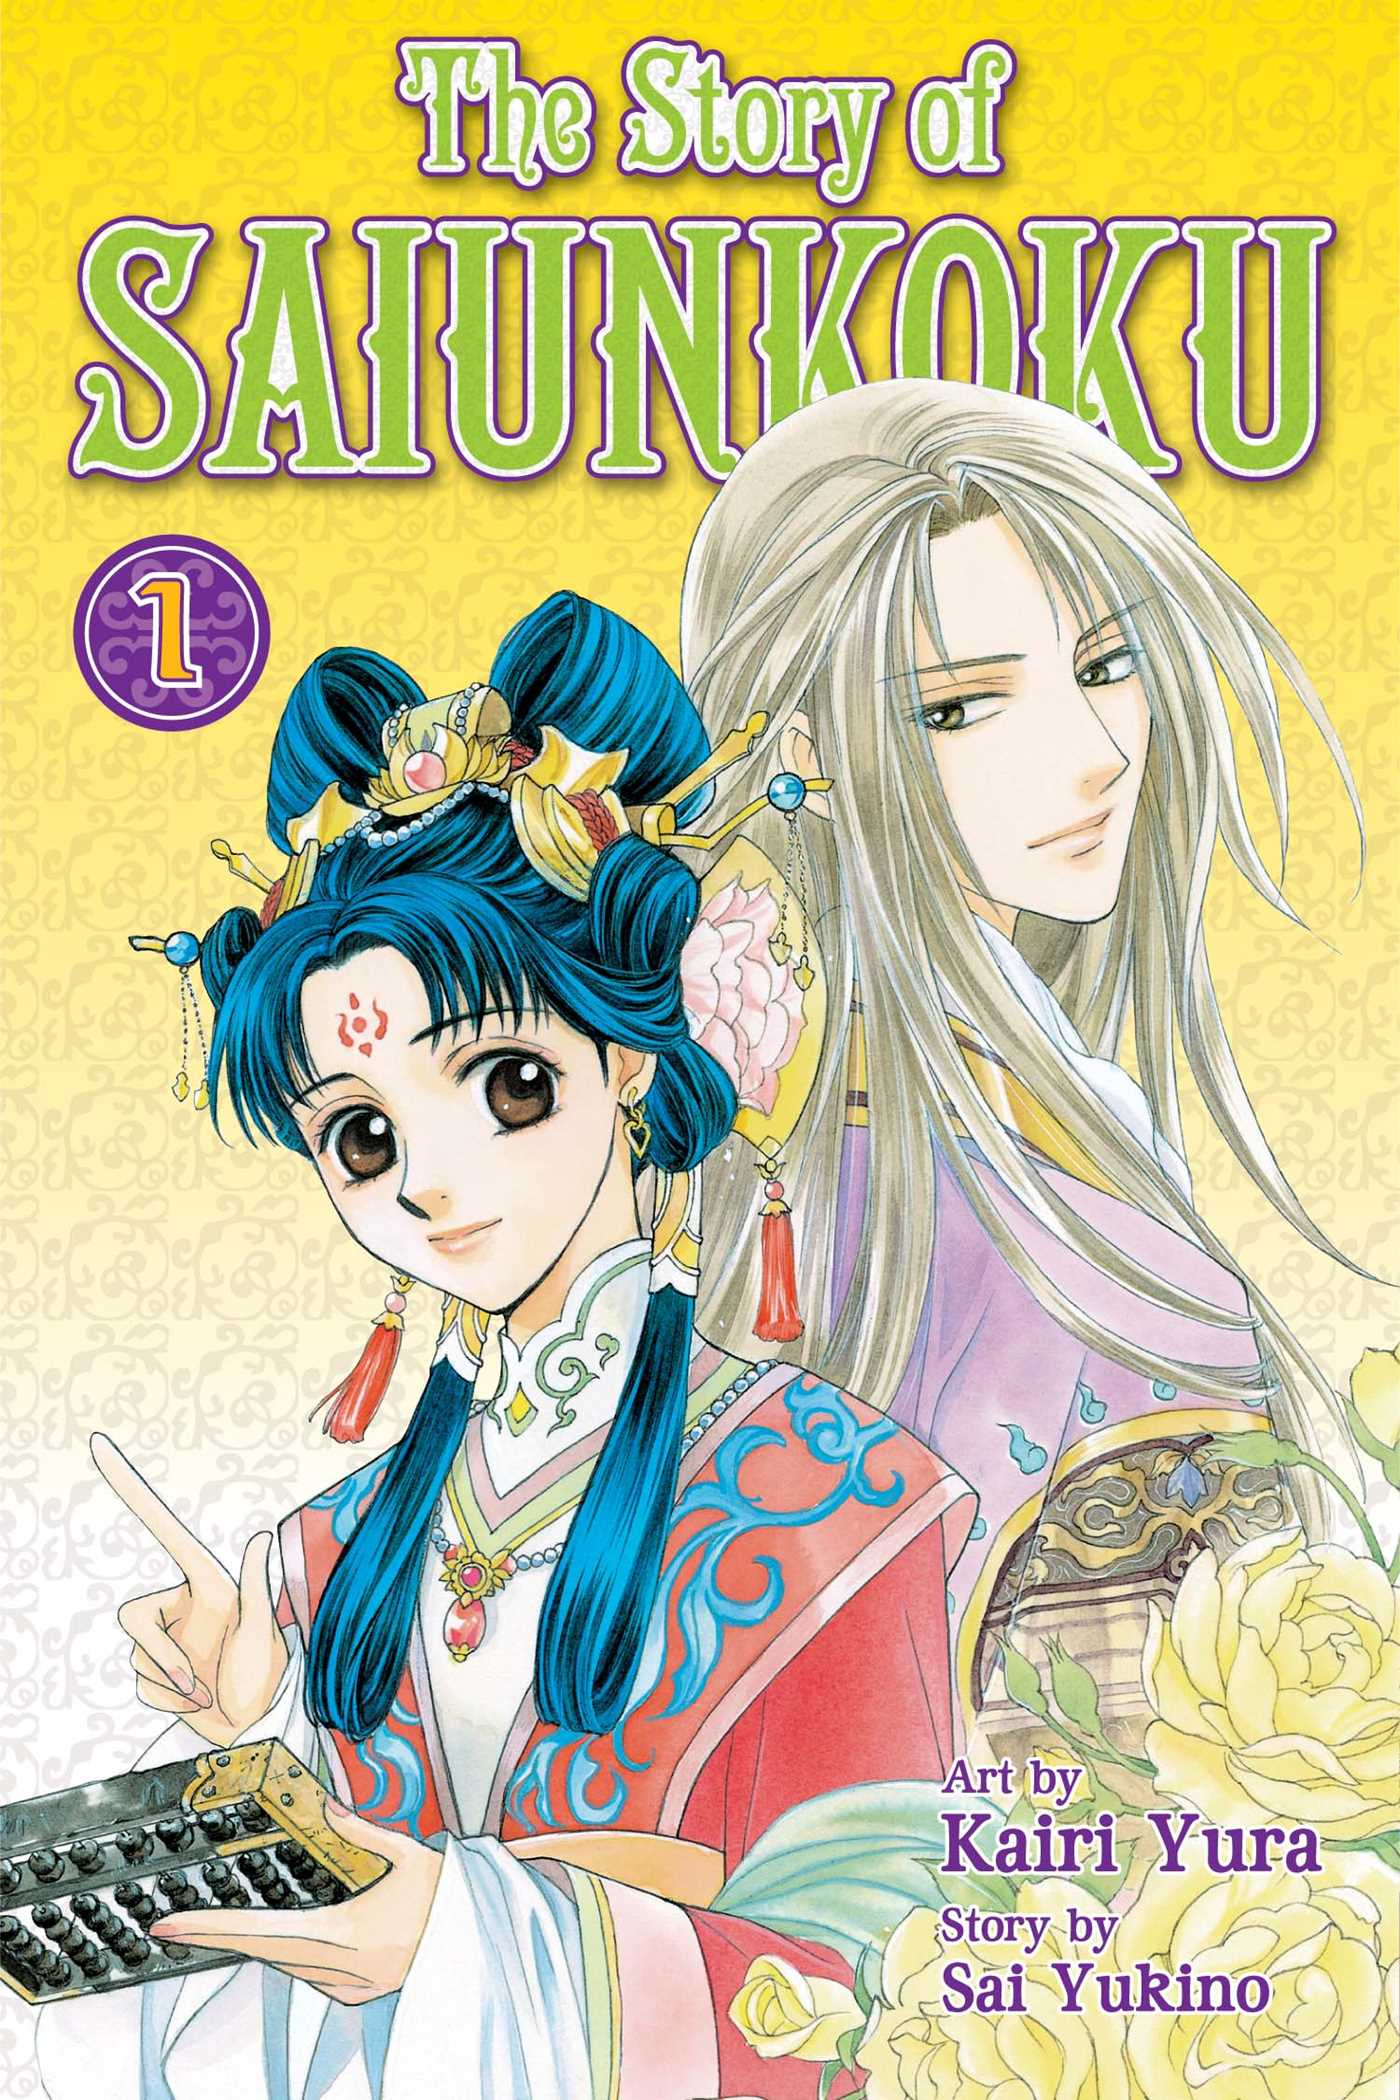 The-story-of-saiunkoku-vol-1-9781421538341_hr